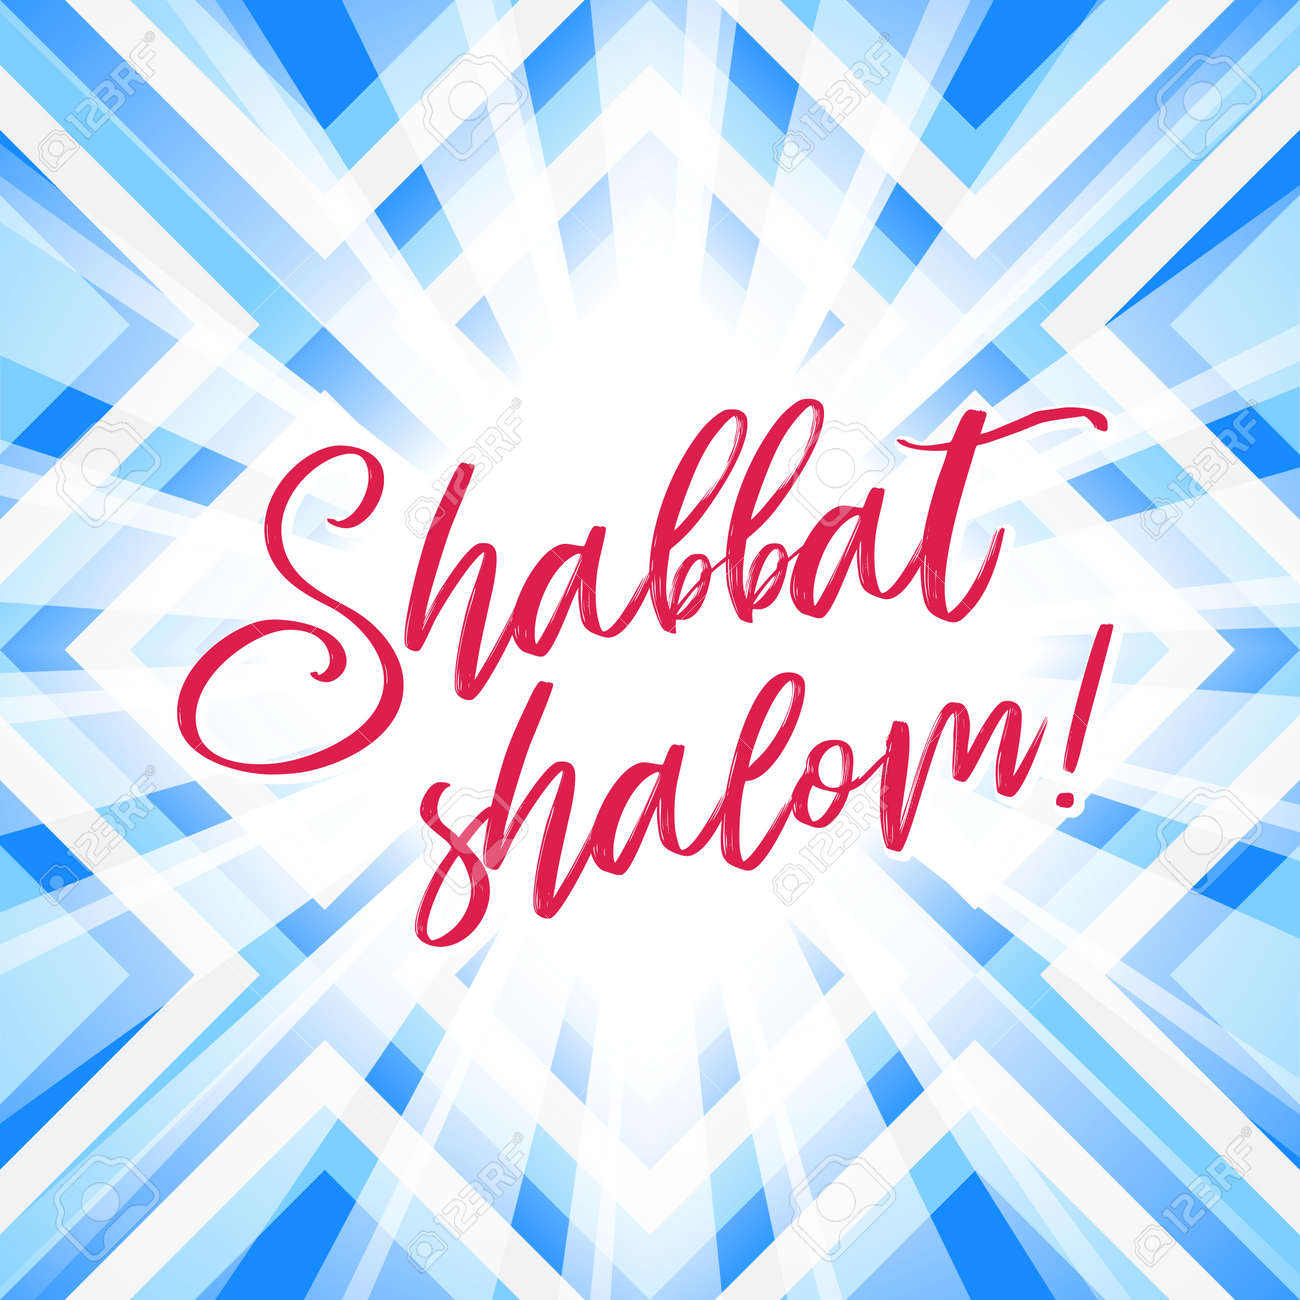 Colorful shabbat shalom greeting card vector illustration jewish colorful shabbat shalom greeting card vector illustration jewish religious sabbath congratulations in hebrew thecheapjerseys Image collections